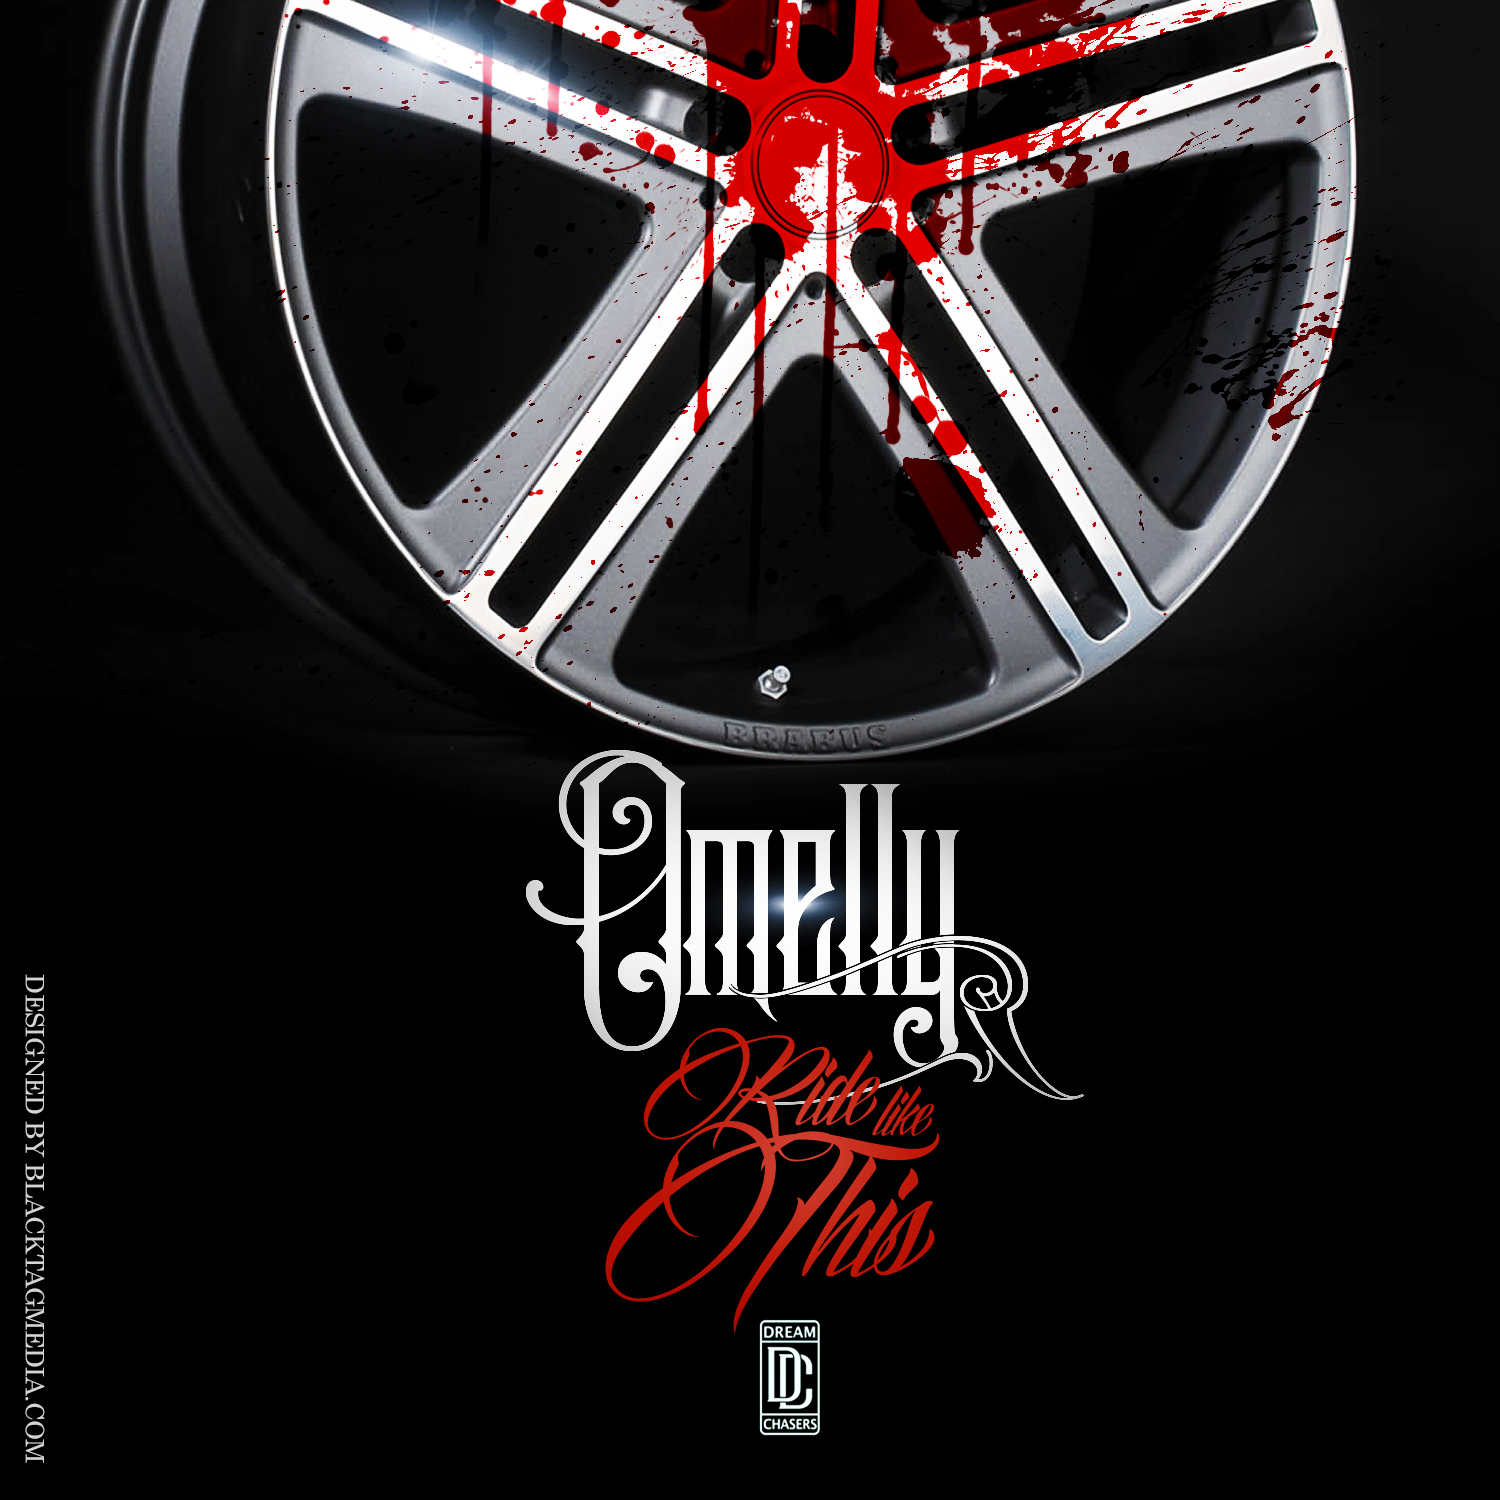 omelly ride like this artwork HHS1987 2013 Omelly   Ride Like This